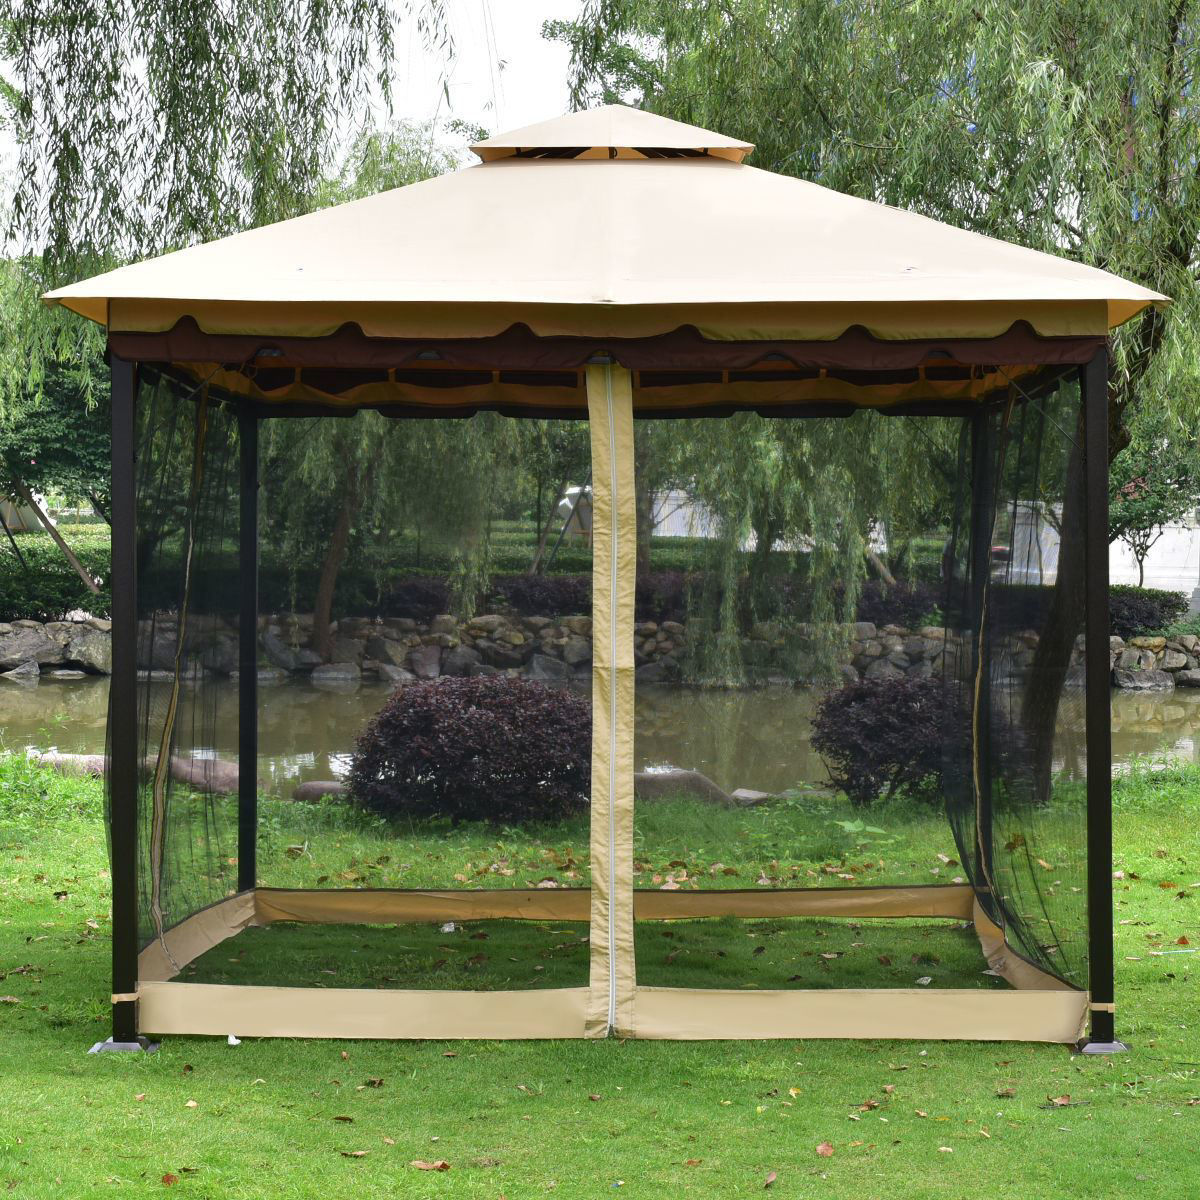 Picture of Outdoor 10'x10' Patio Tent Gazebo 2-Tier